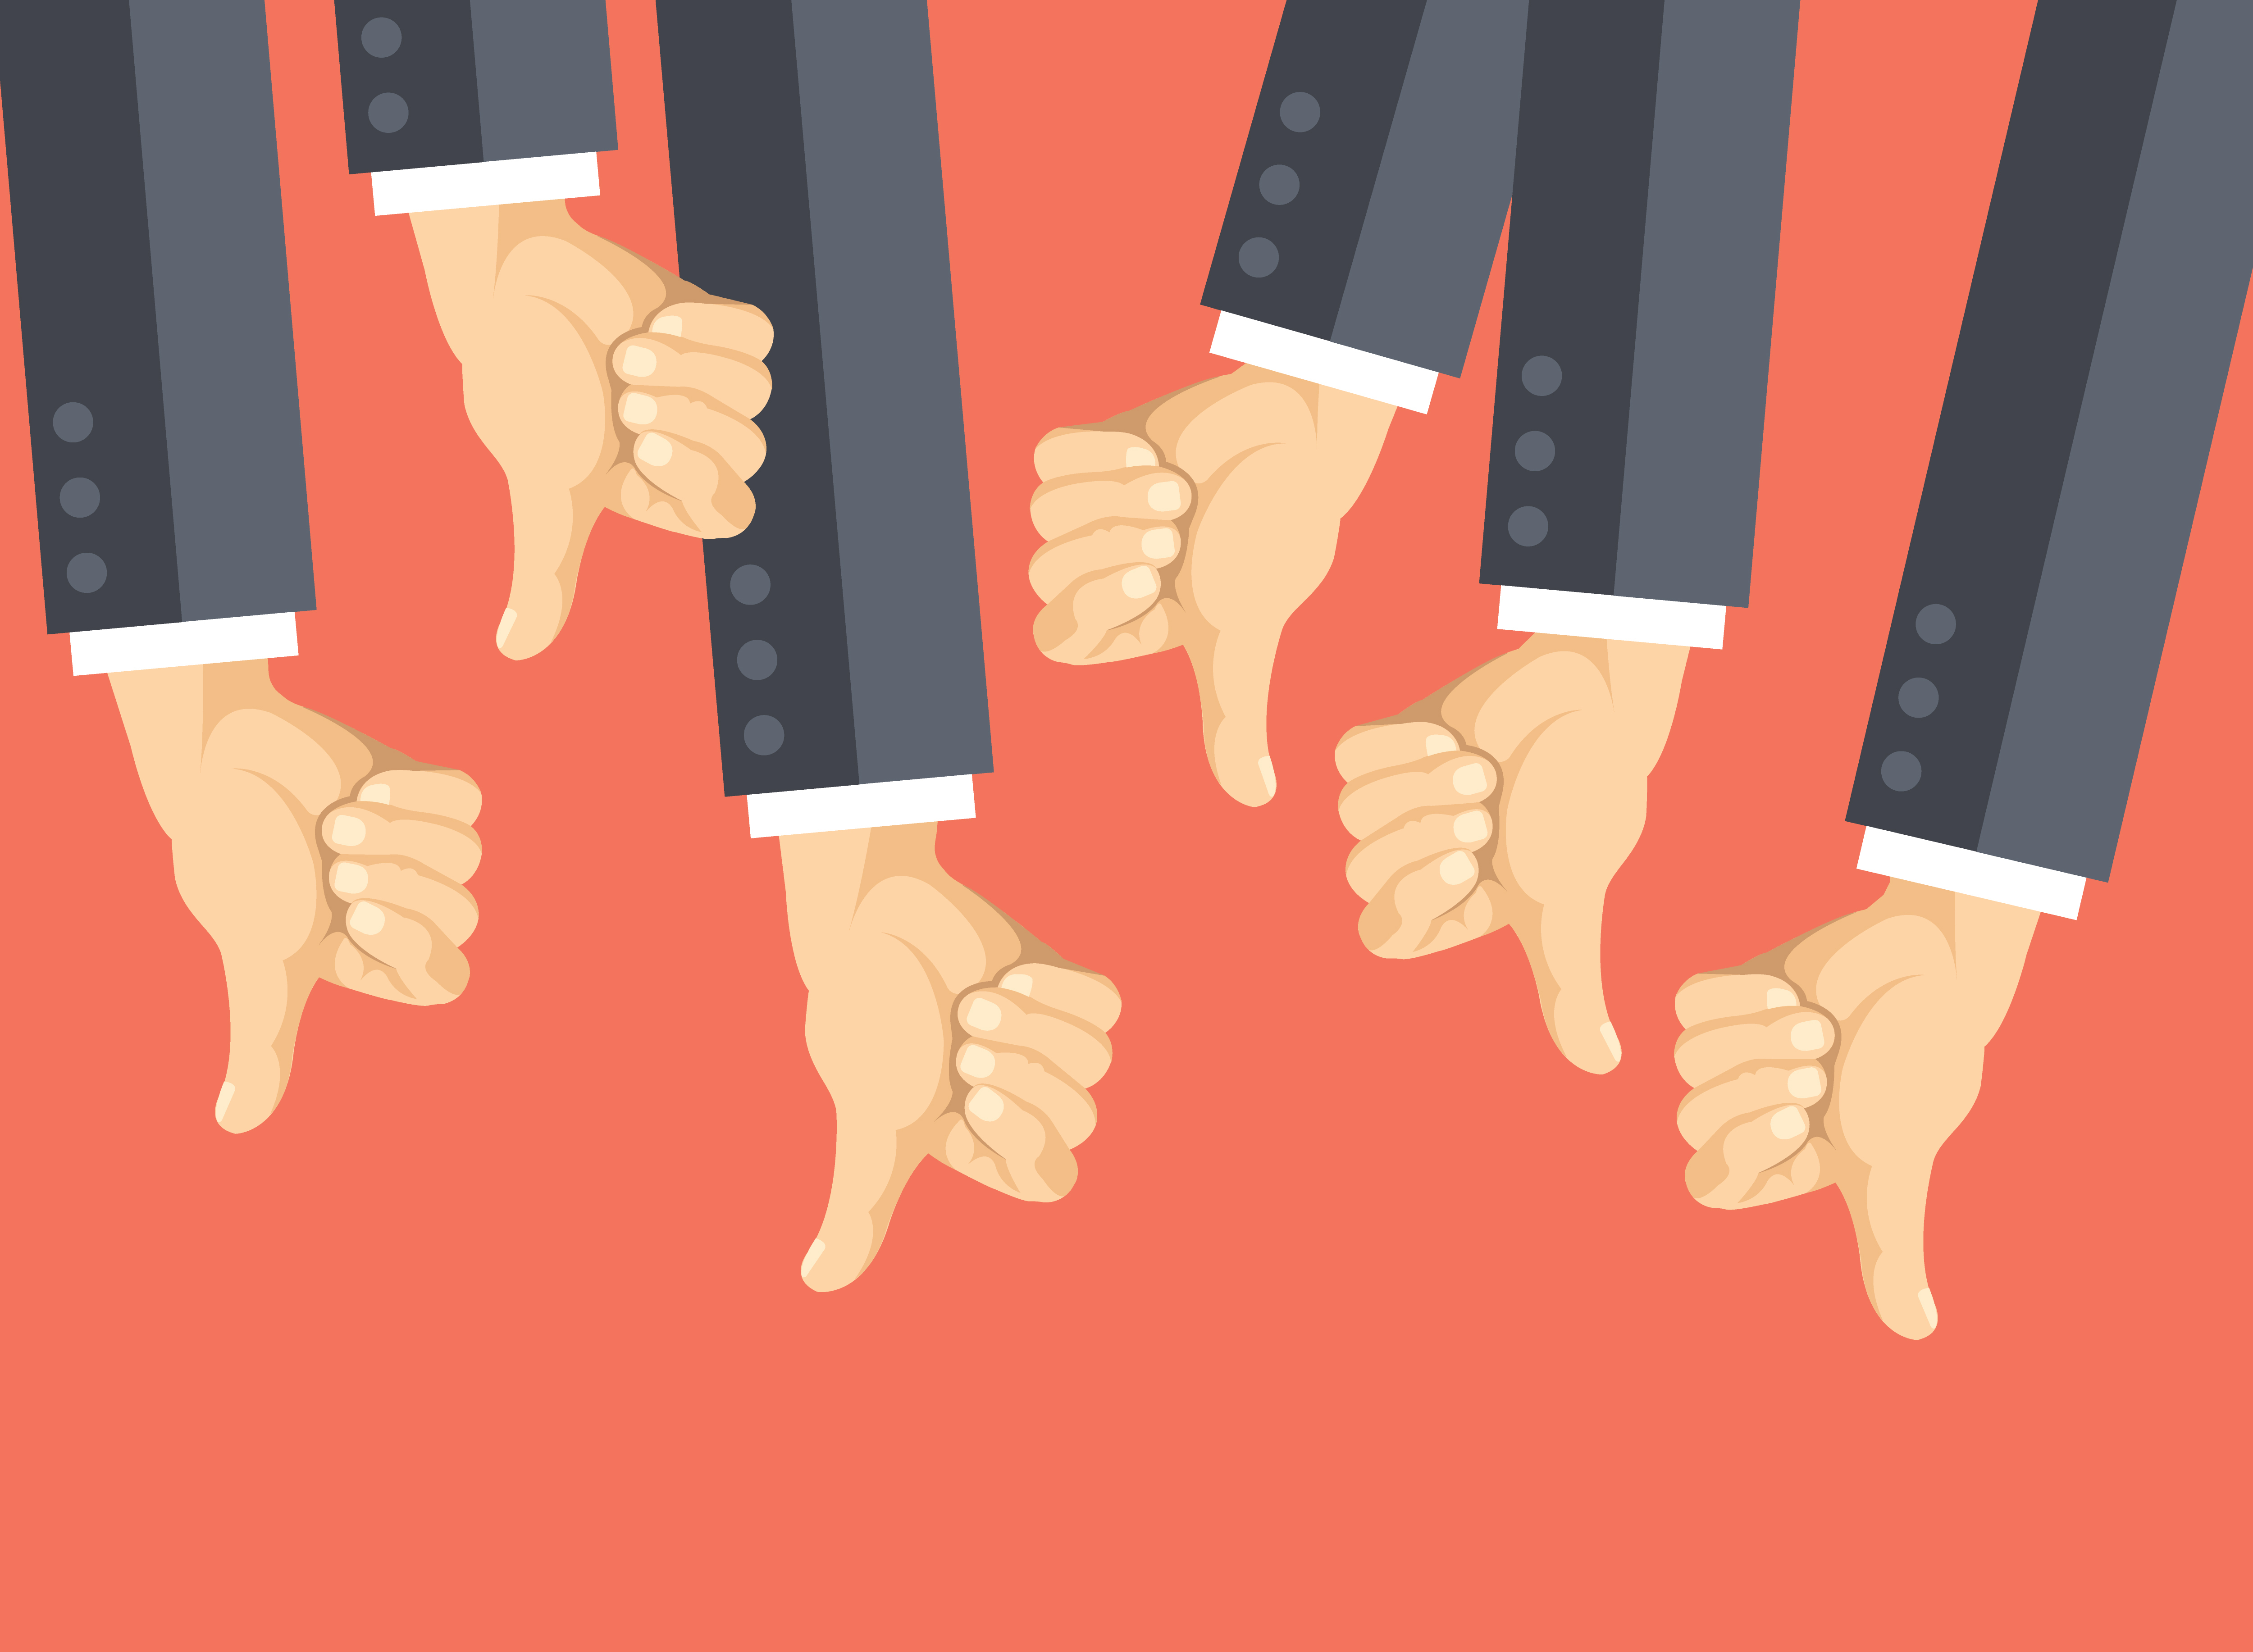 Good complaint handling drives loyalty for SMEs